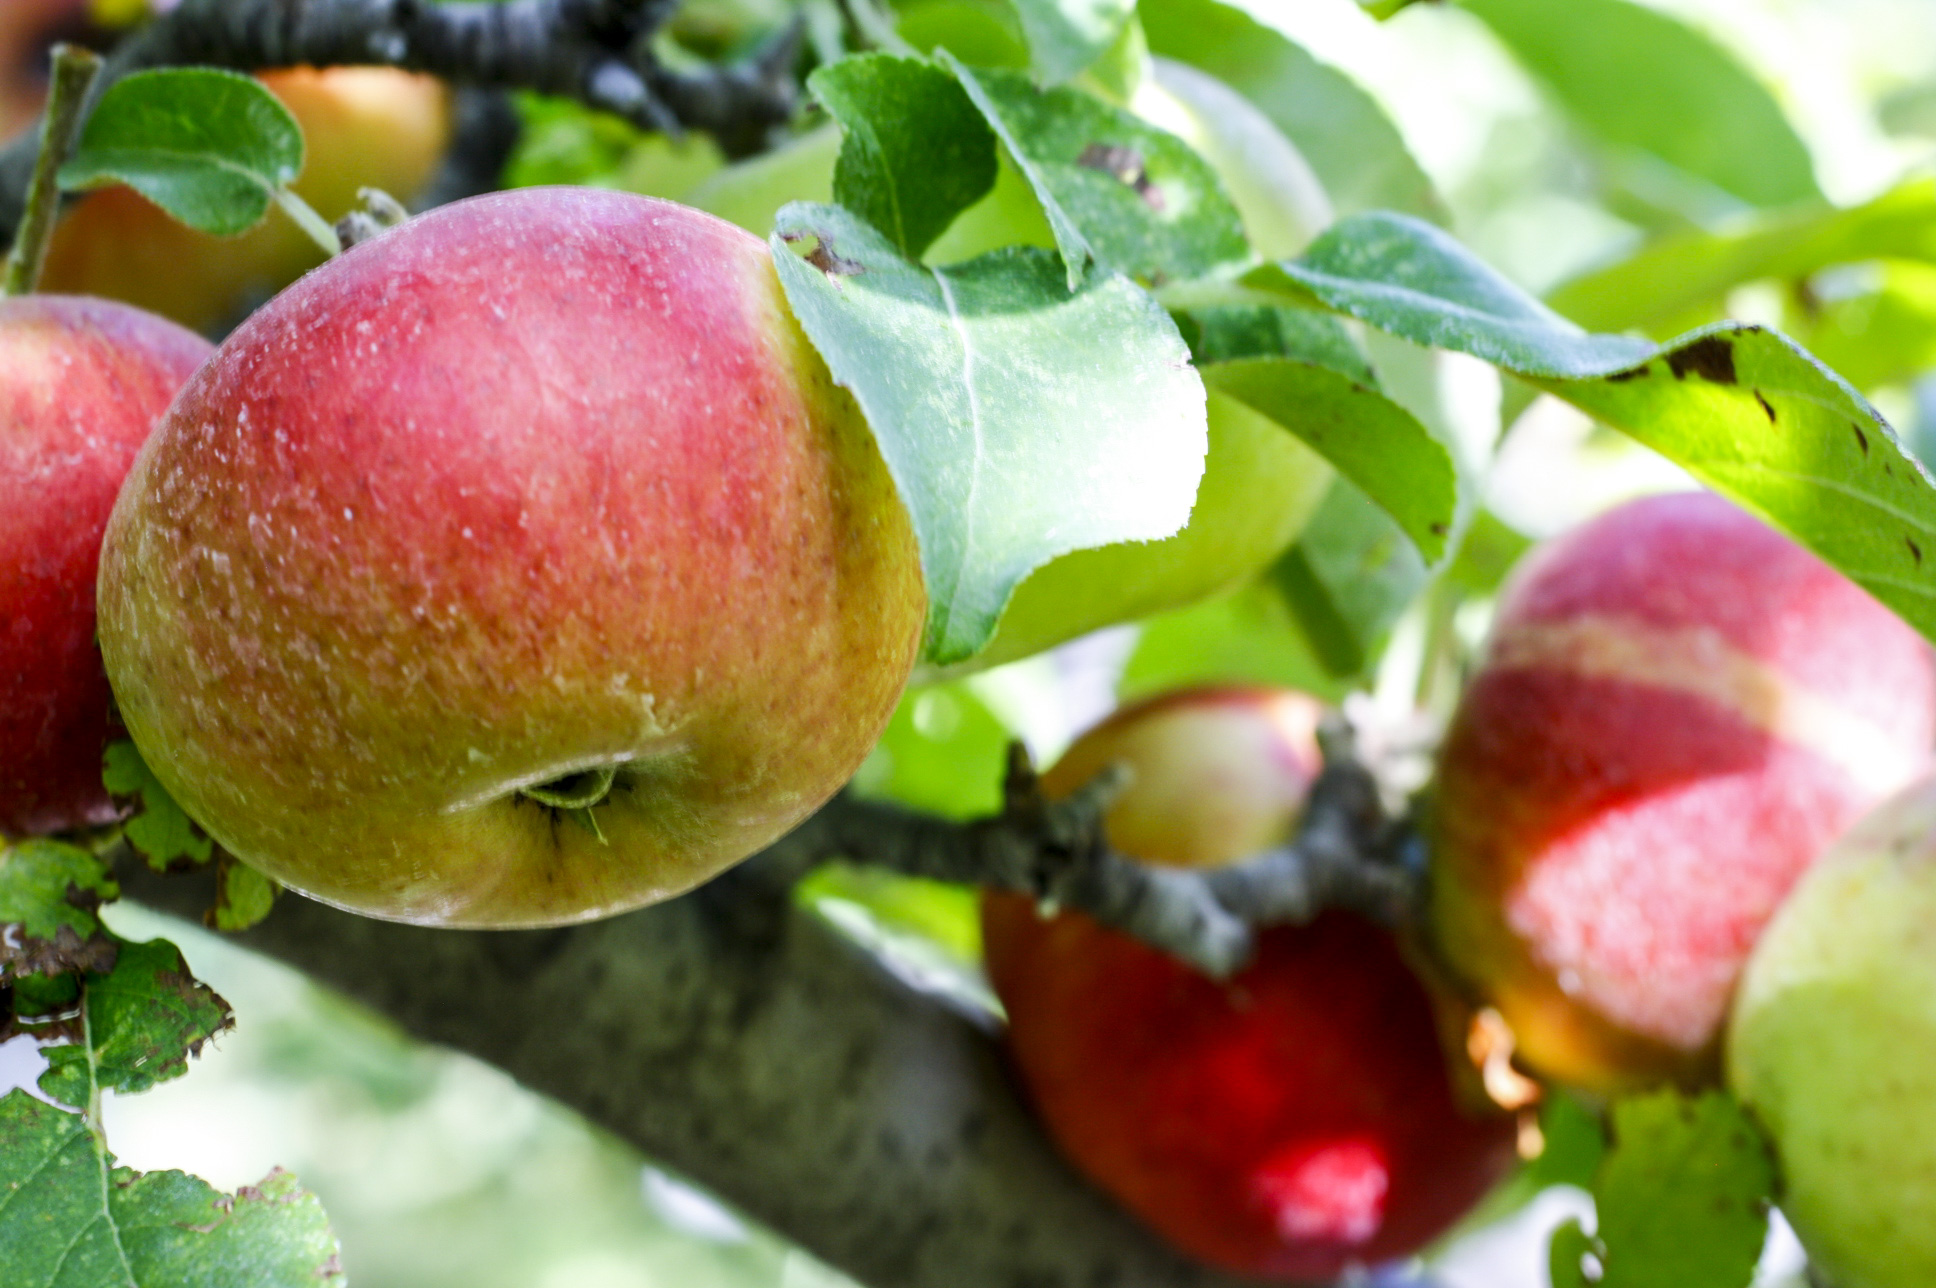 Apple picking is one of the fun fall festivities in Rexburg.